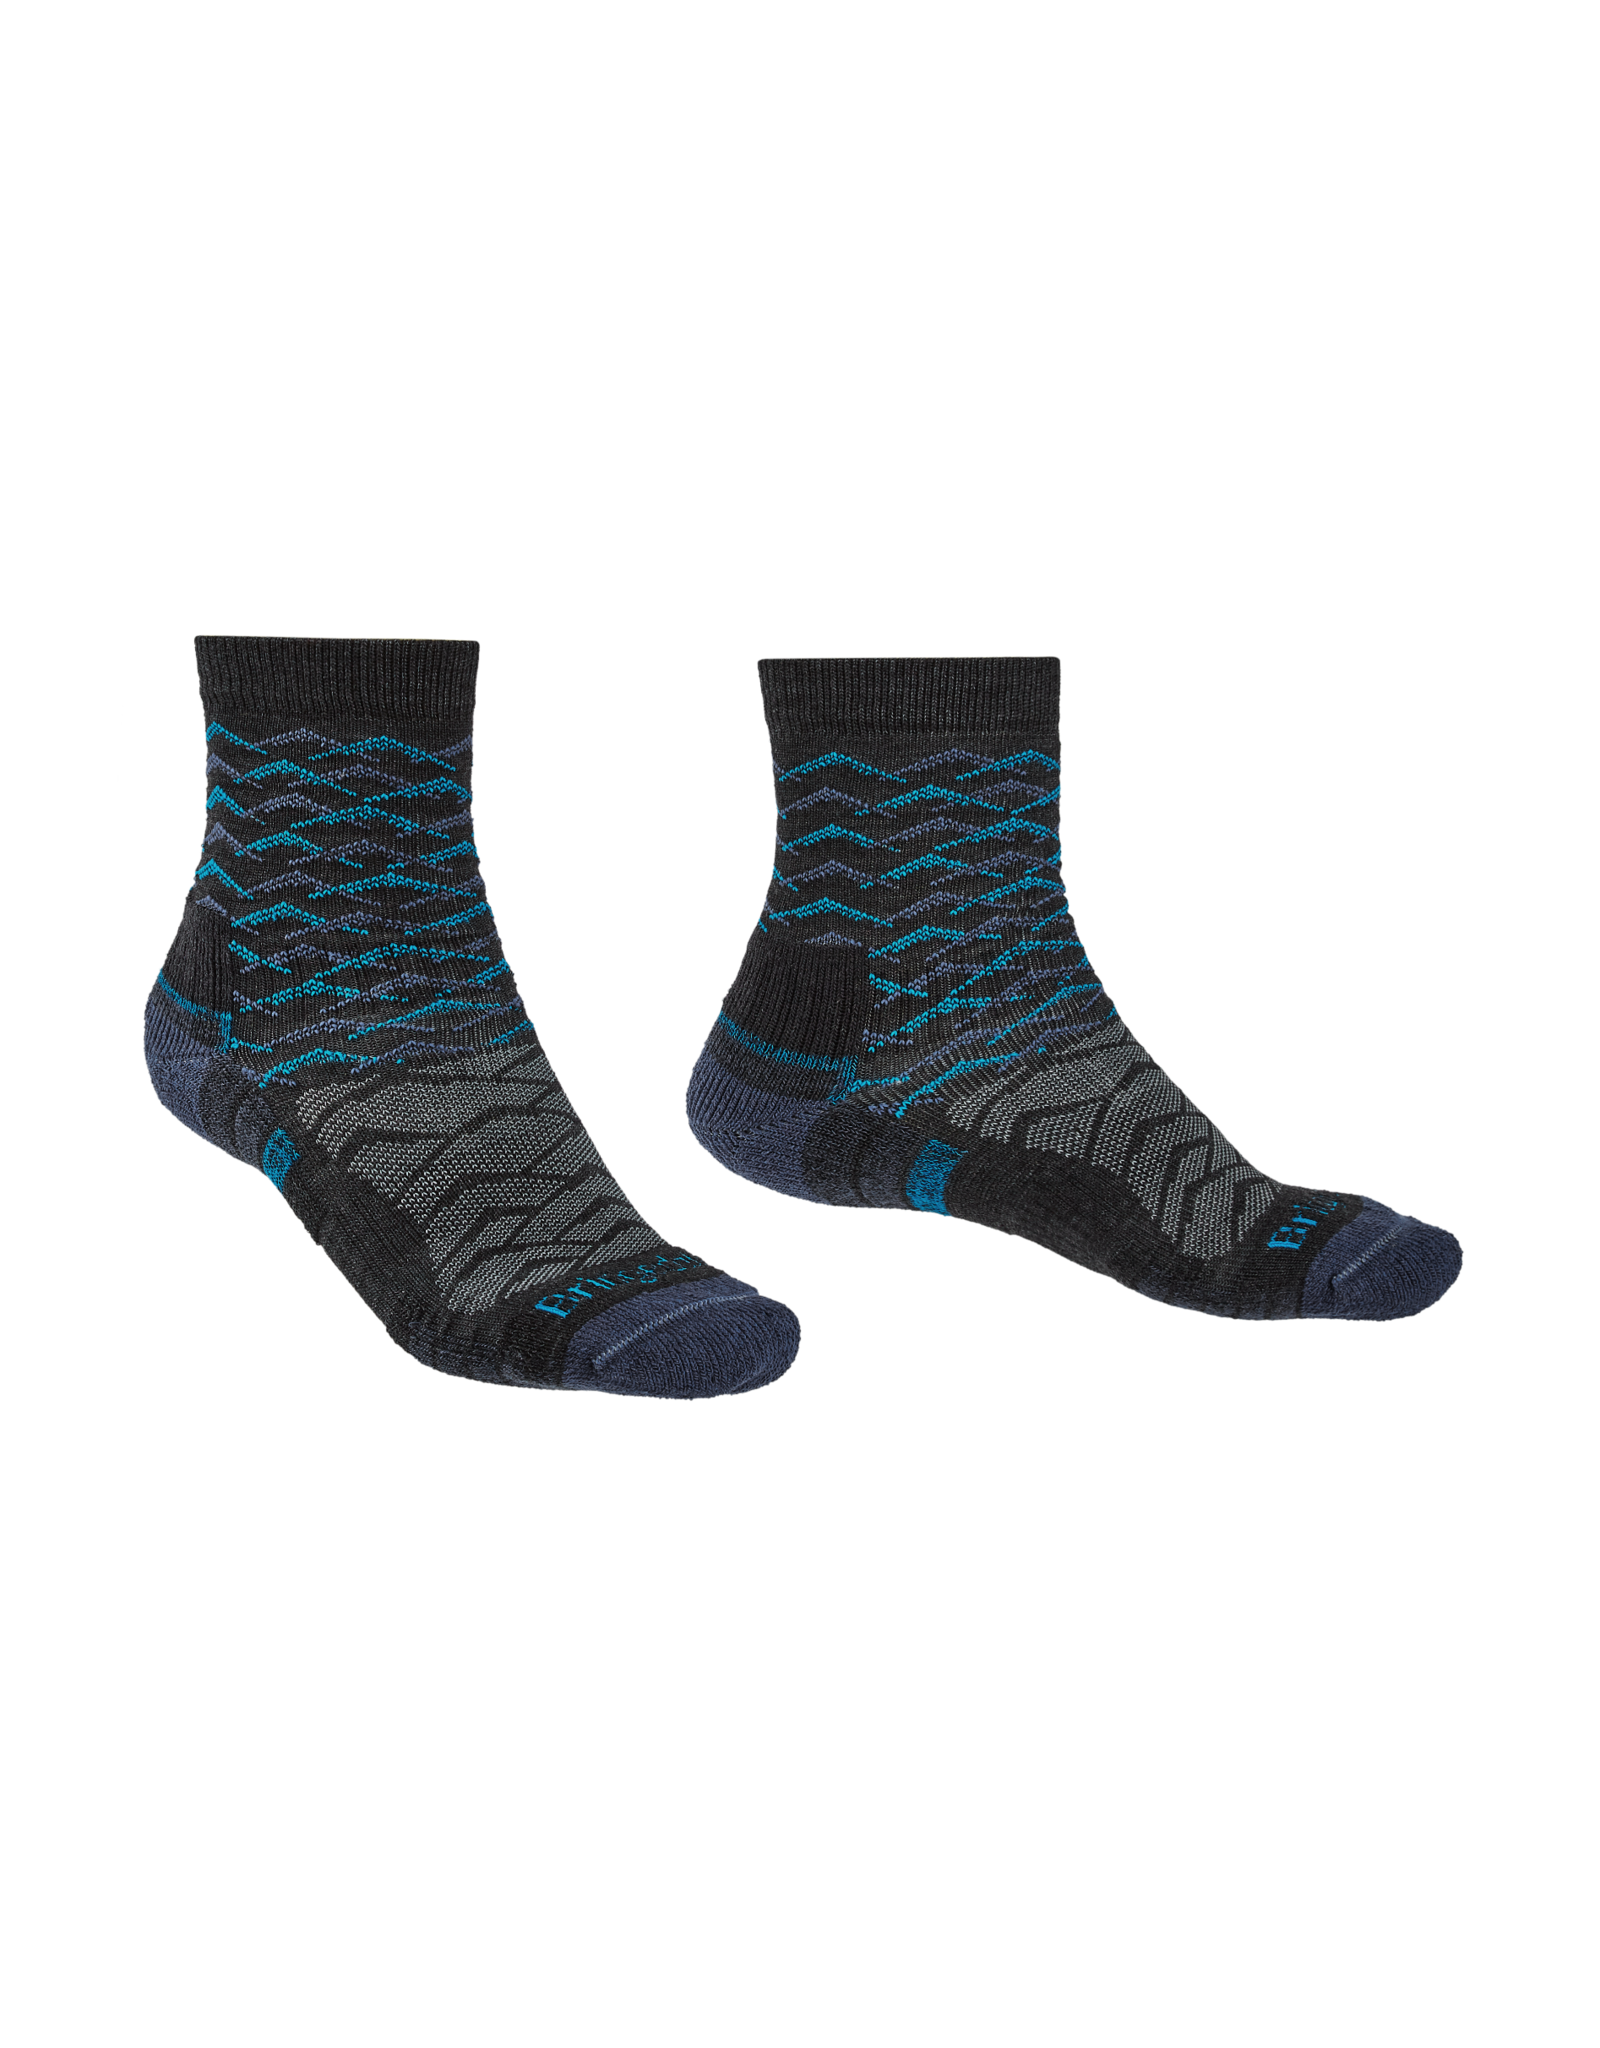 BRIDGEDALE Bridgedale Men's Lightweight Merino Endurance Hiking Socks Ankle Height